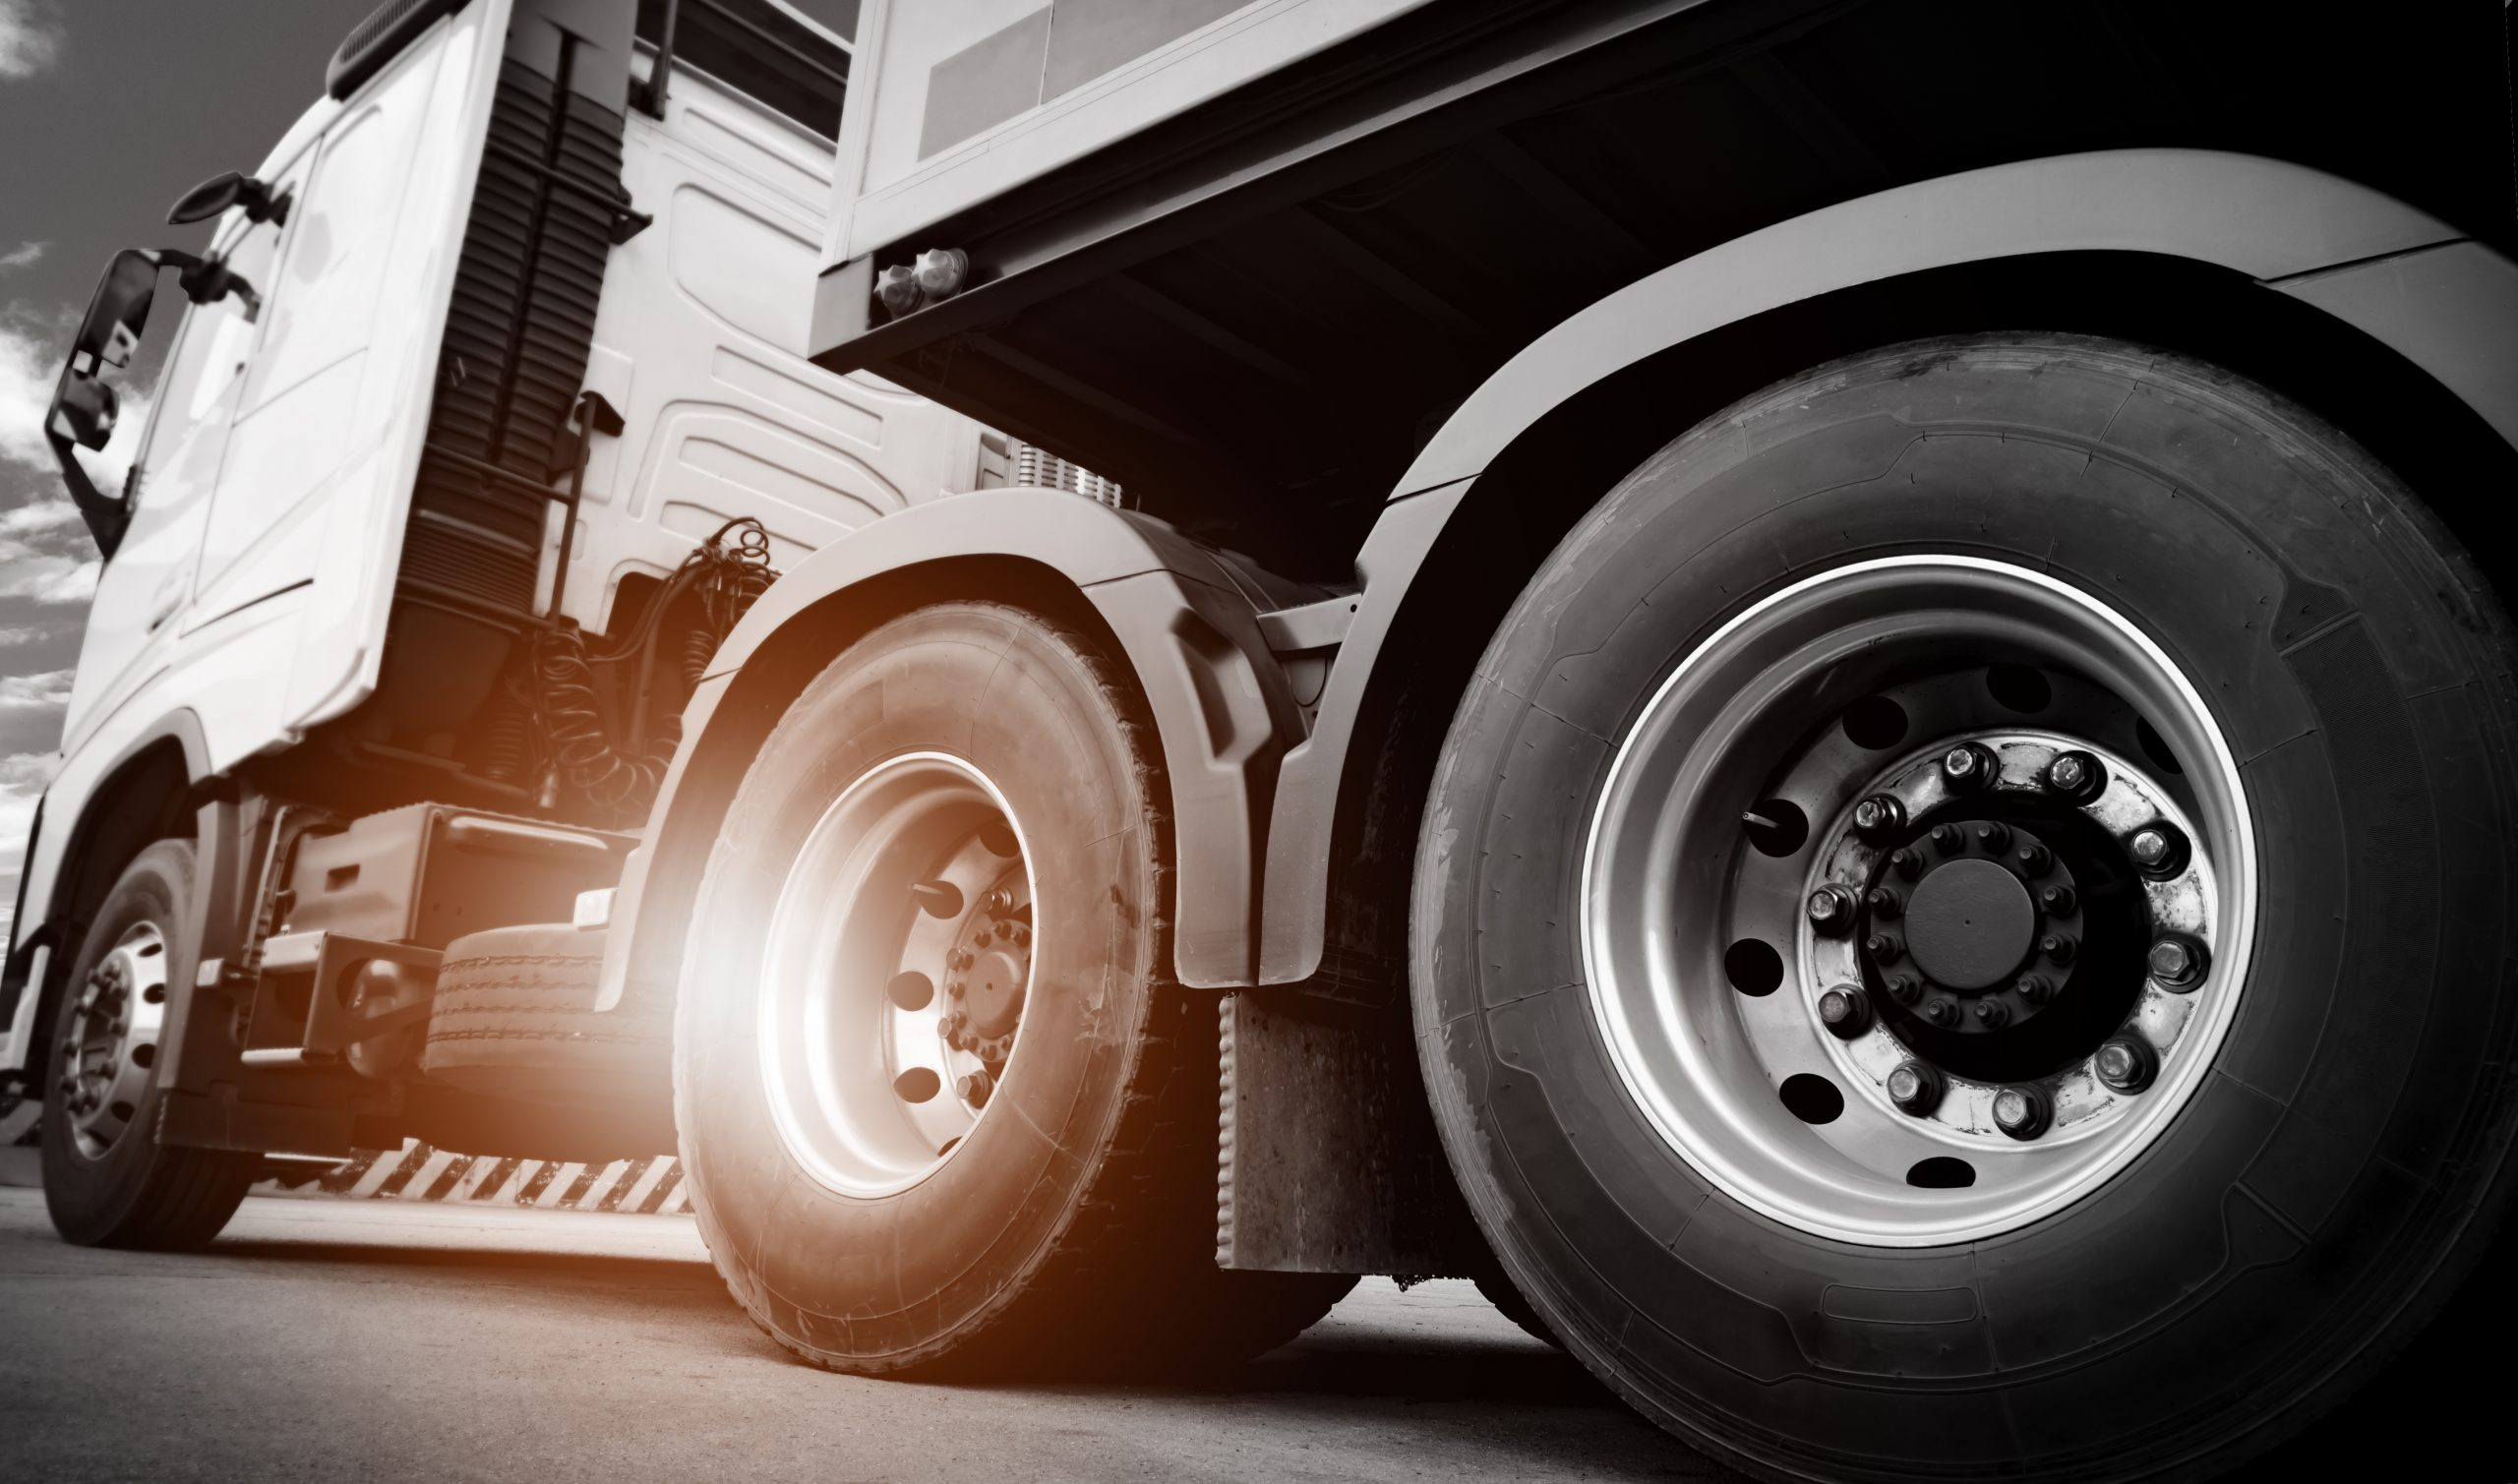 BTMA Welcomes Ban On Tyres Over Ten Years Of Age On Heavy Commercials